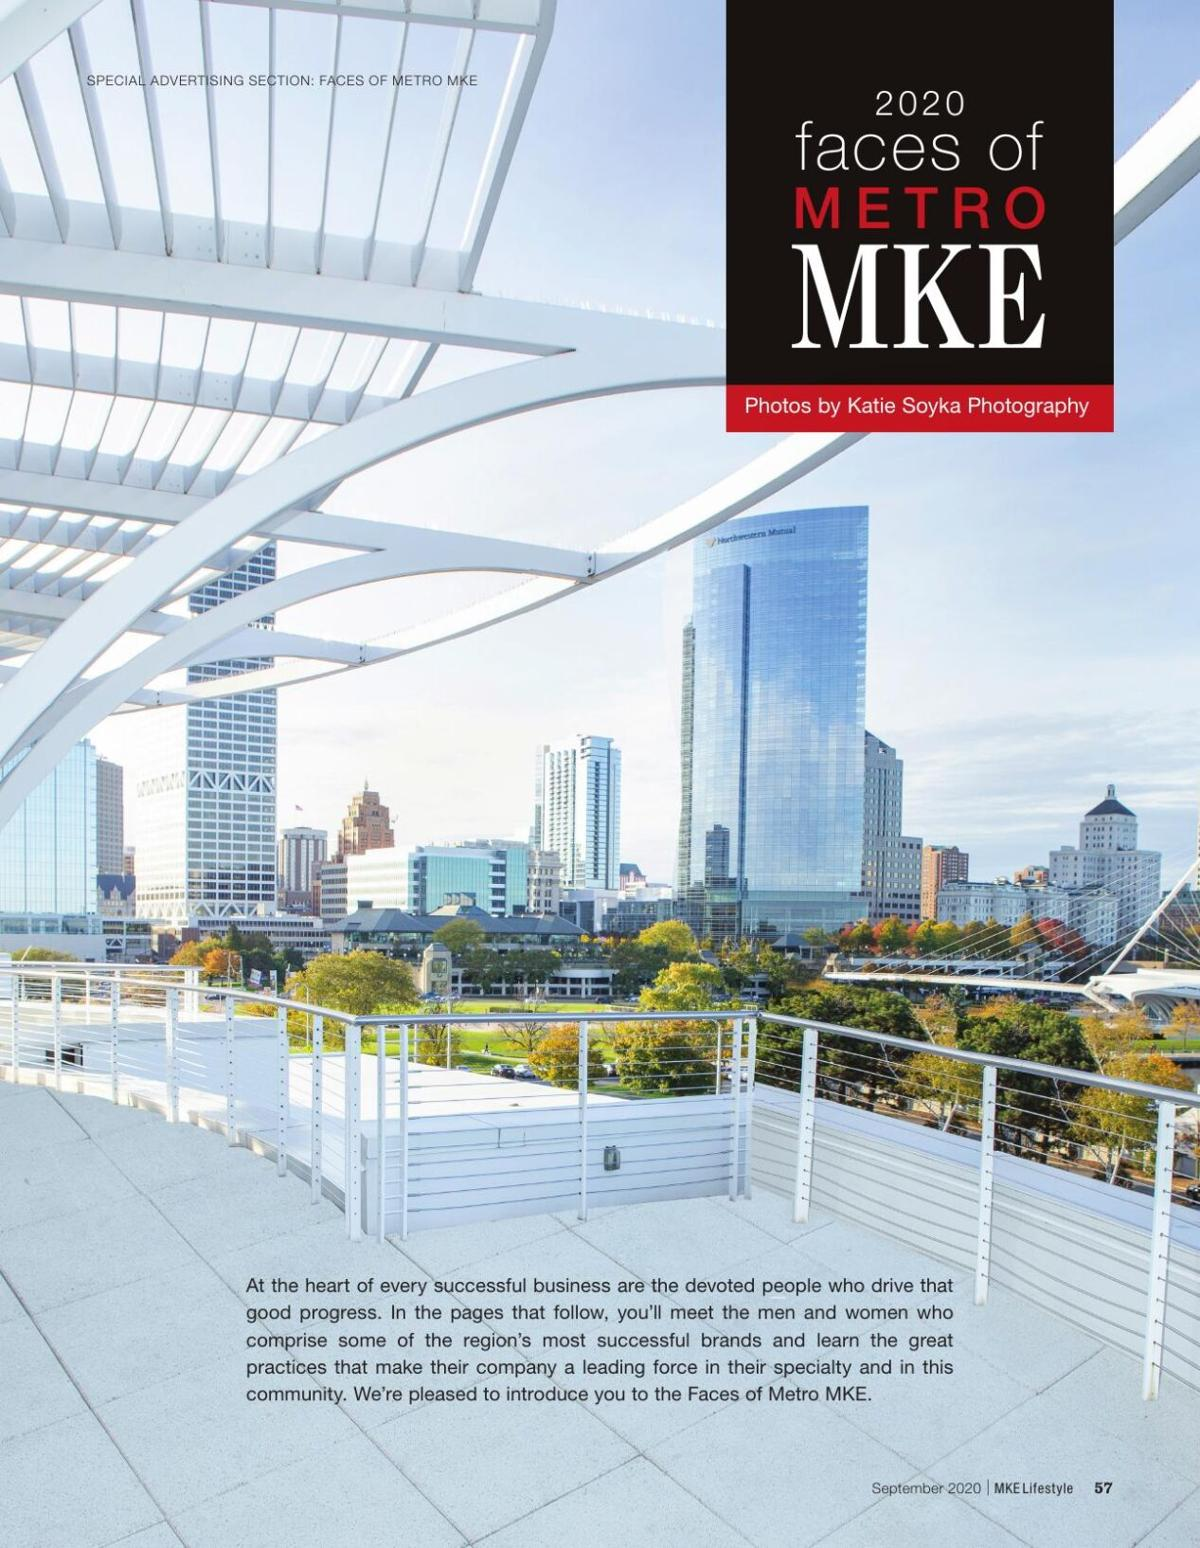 MKE Lifestyle Faces of Metro MKE 2020